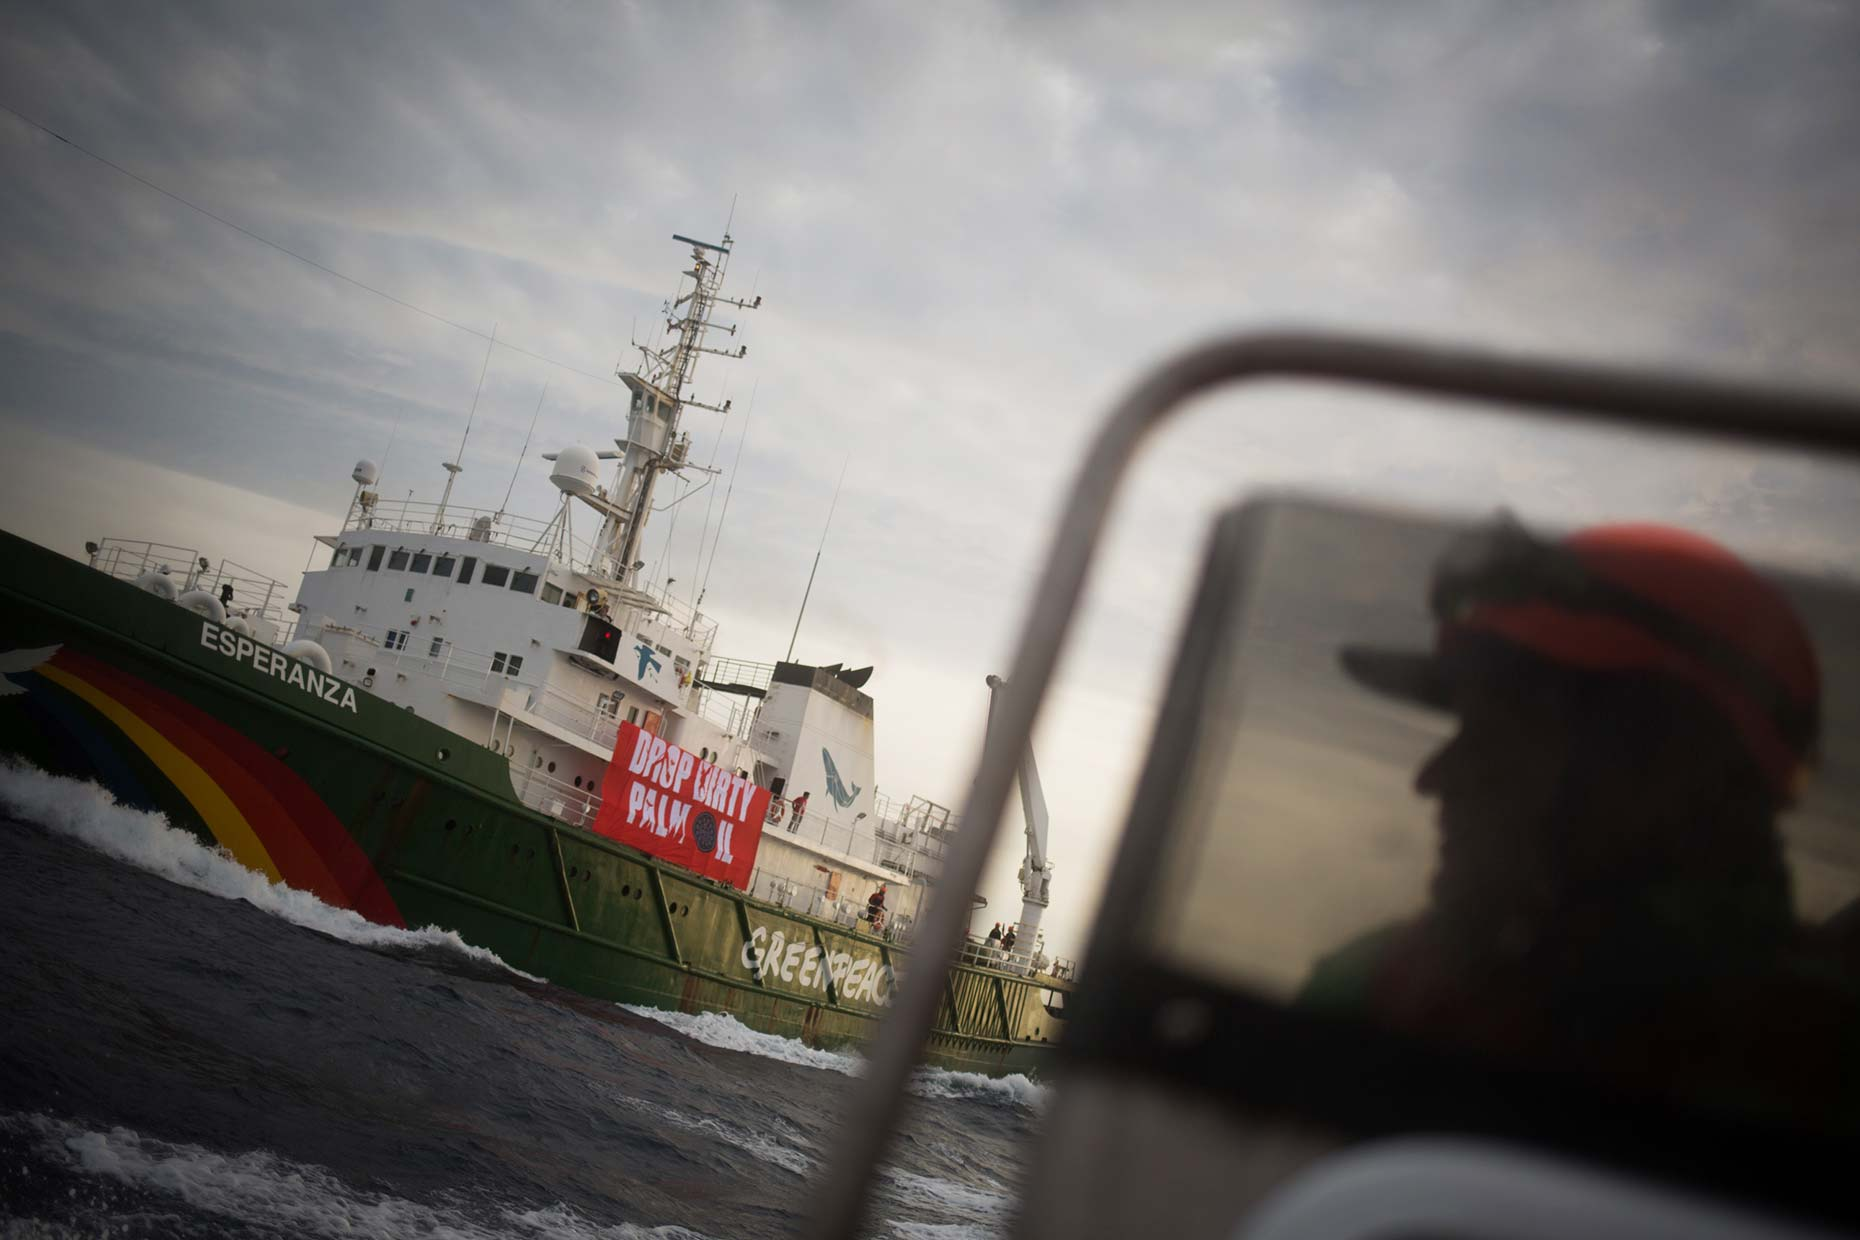 Greenpeace ships at sea, by Scotland photographer